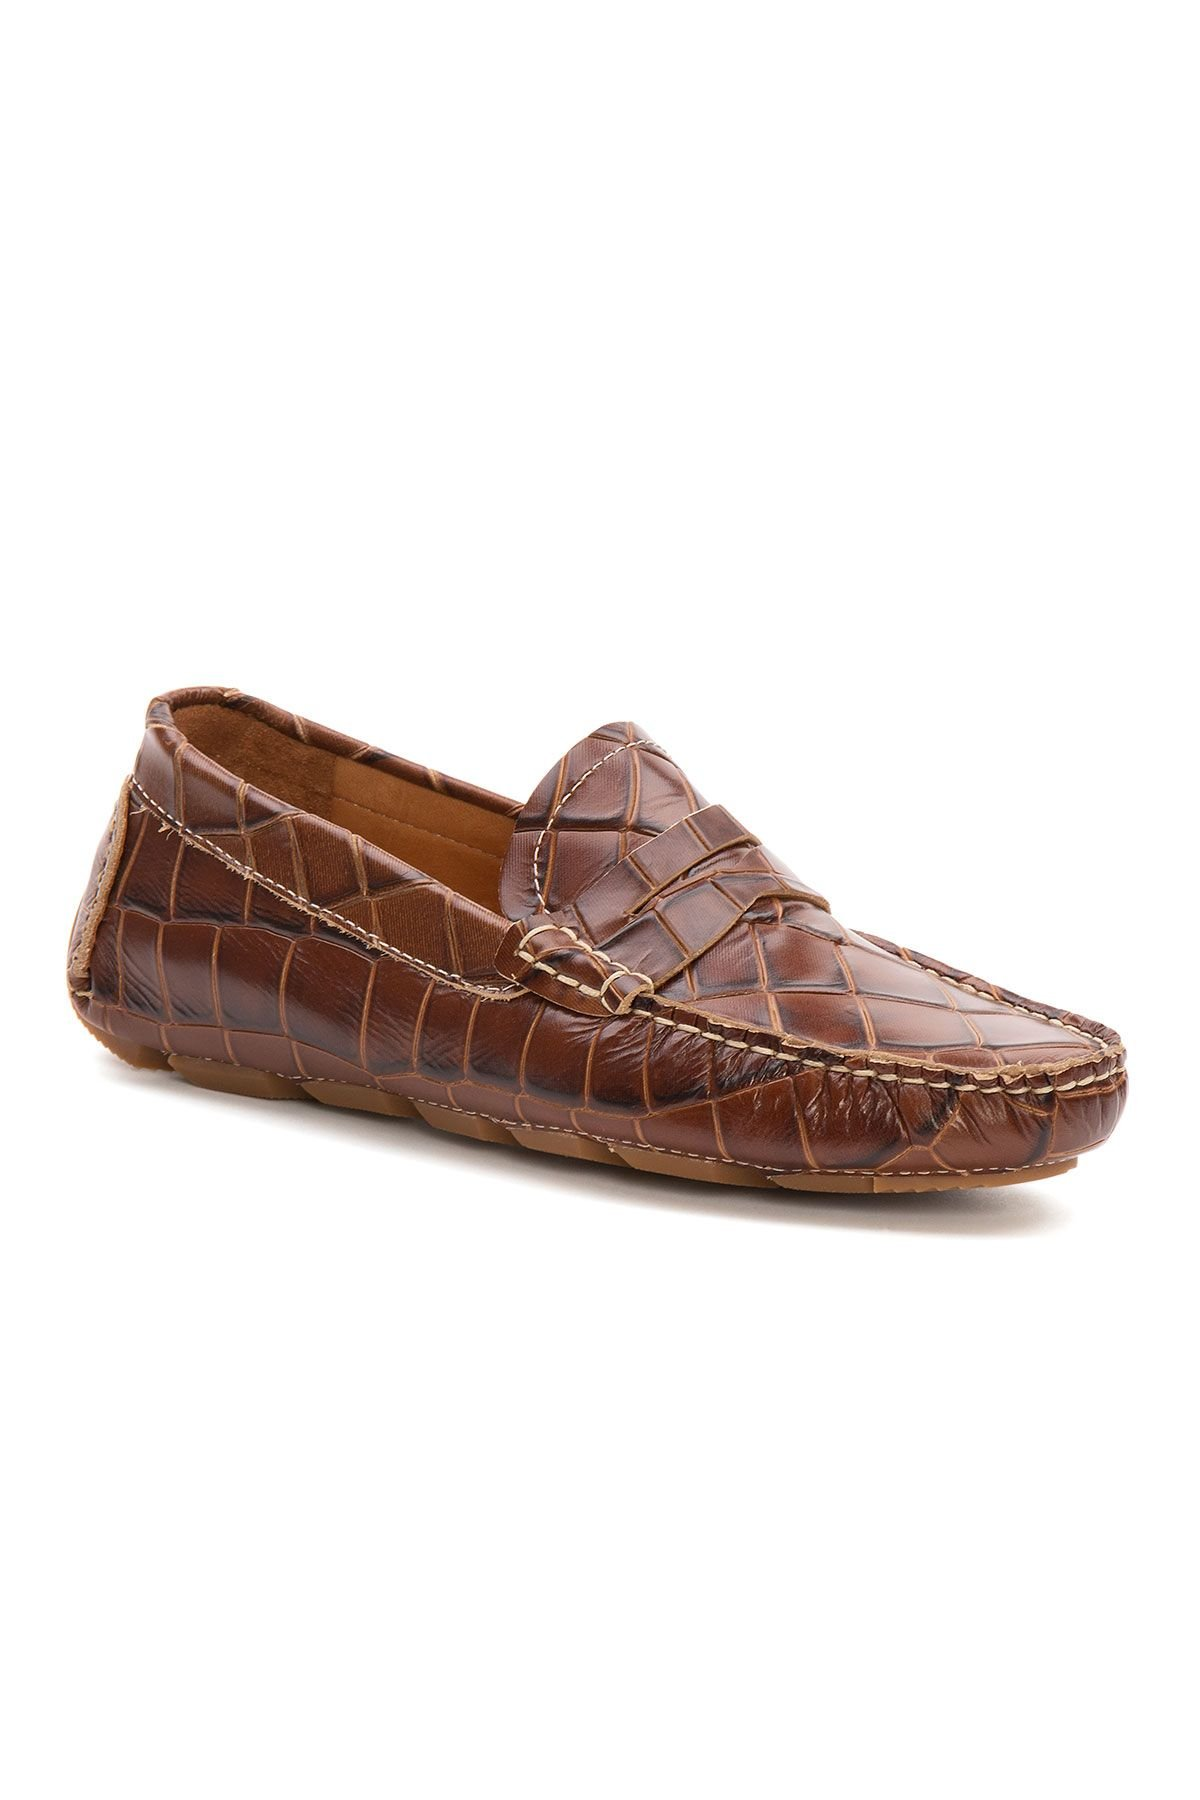 Pegia Genuine Leather Men's Loafer Shoes 500902 Brown